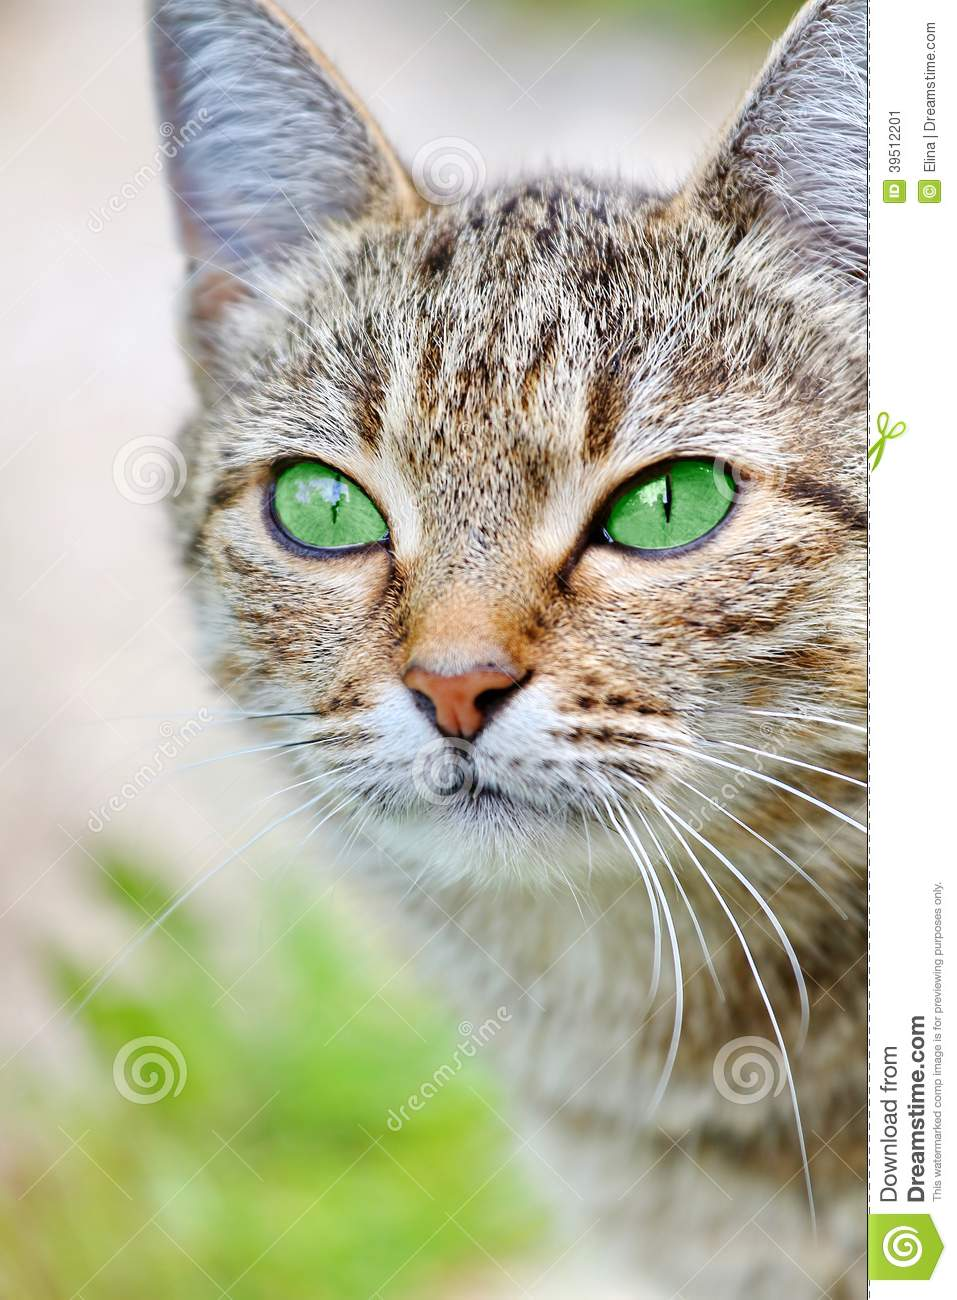 Beautiful Grey Waterproof Flooring Ideas For Living Room: Striped Cat With Green Eyes Stock Photo